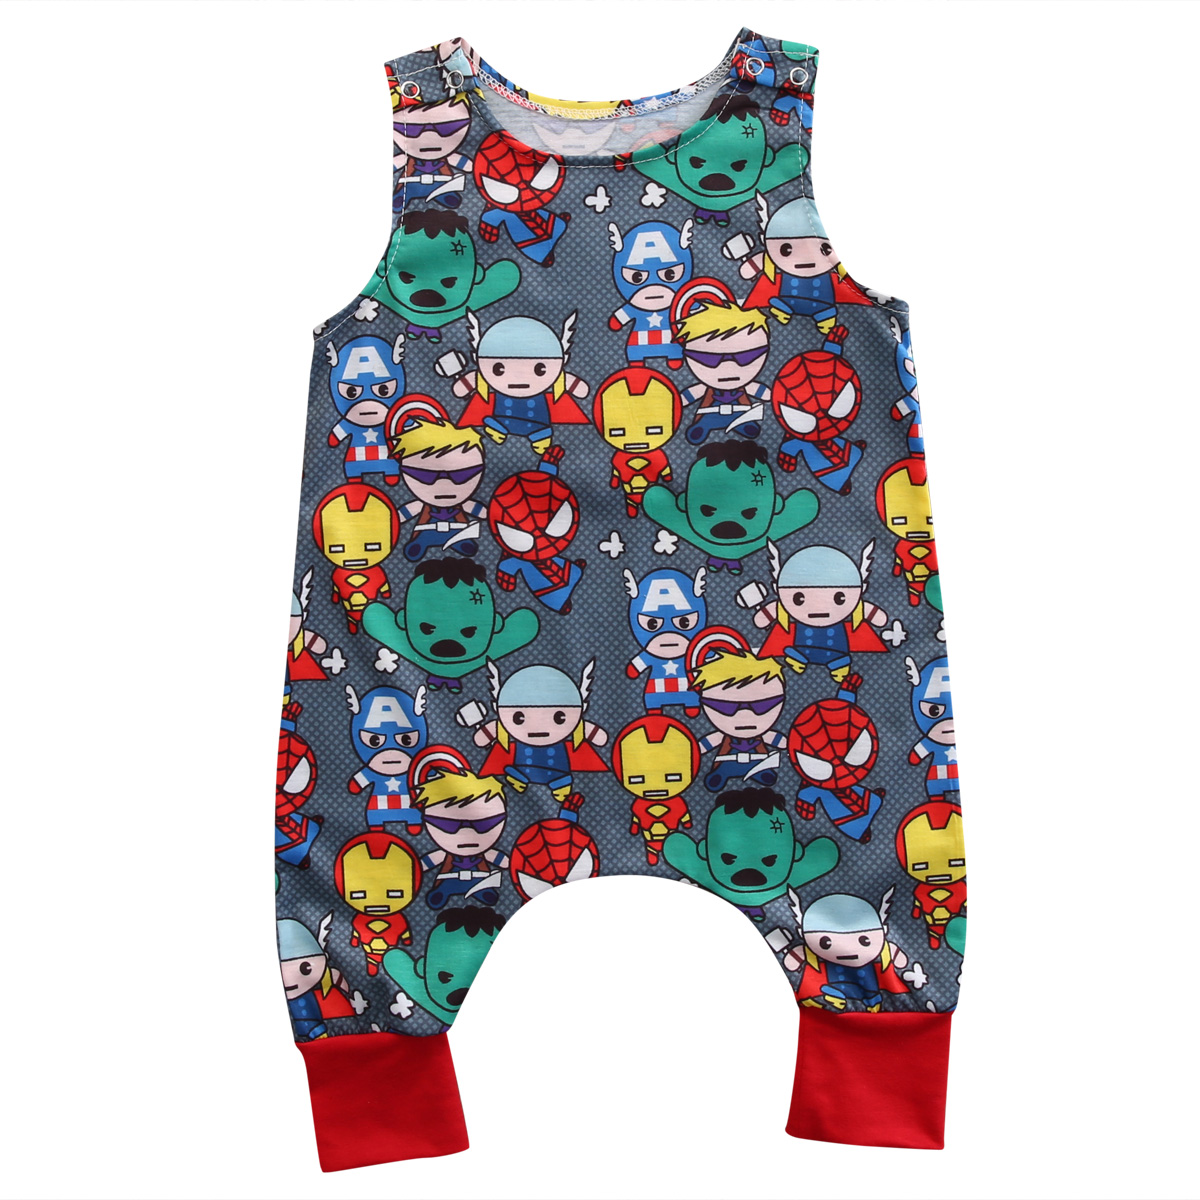 Summer Infant Baby Boy Sleeveless Romper Newborn Kids Superhero Cartoon Print Cotton Casual Jumpsuit Children Outfits Clothes